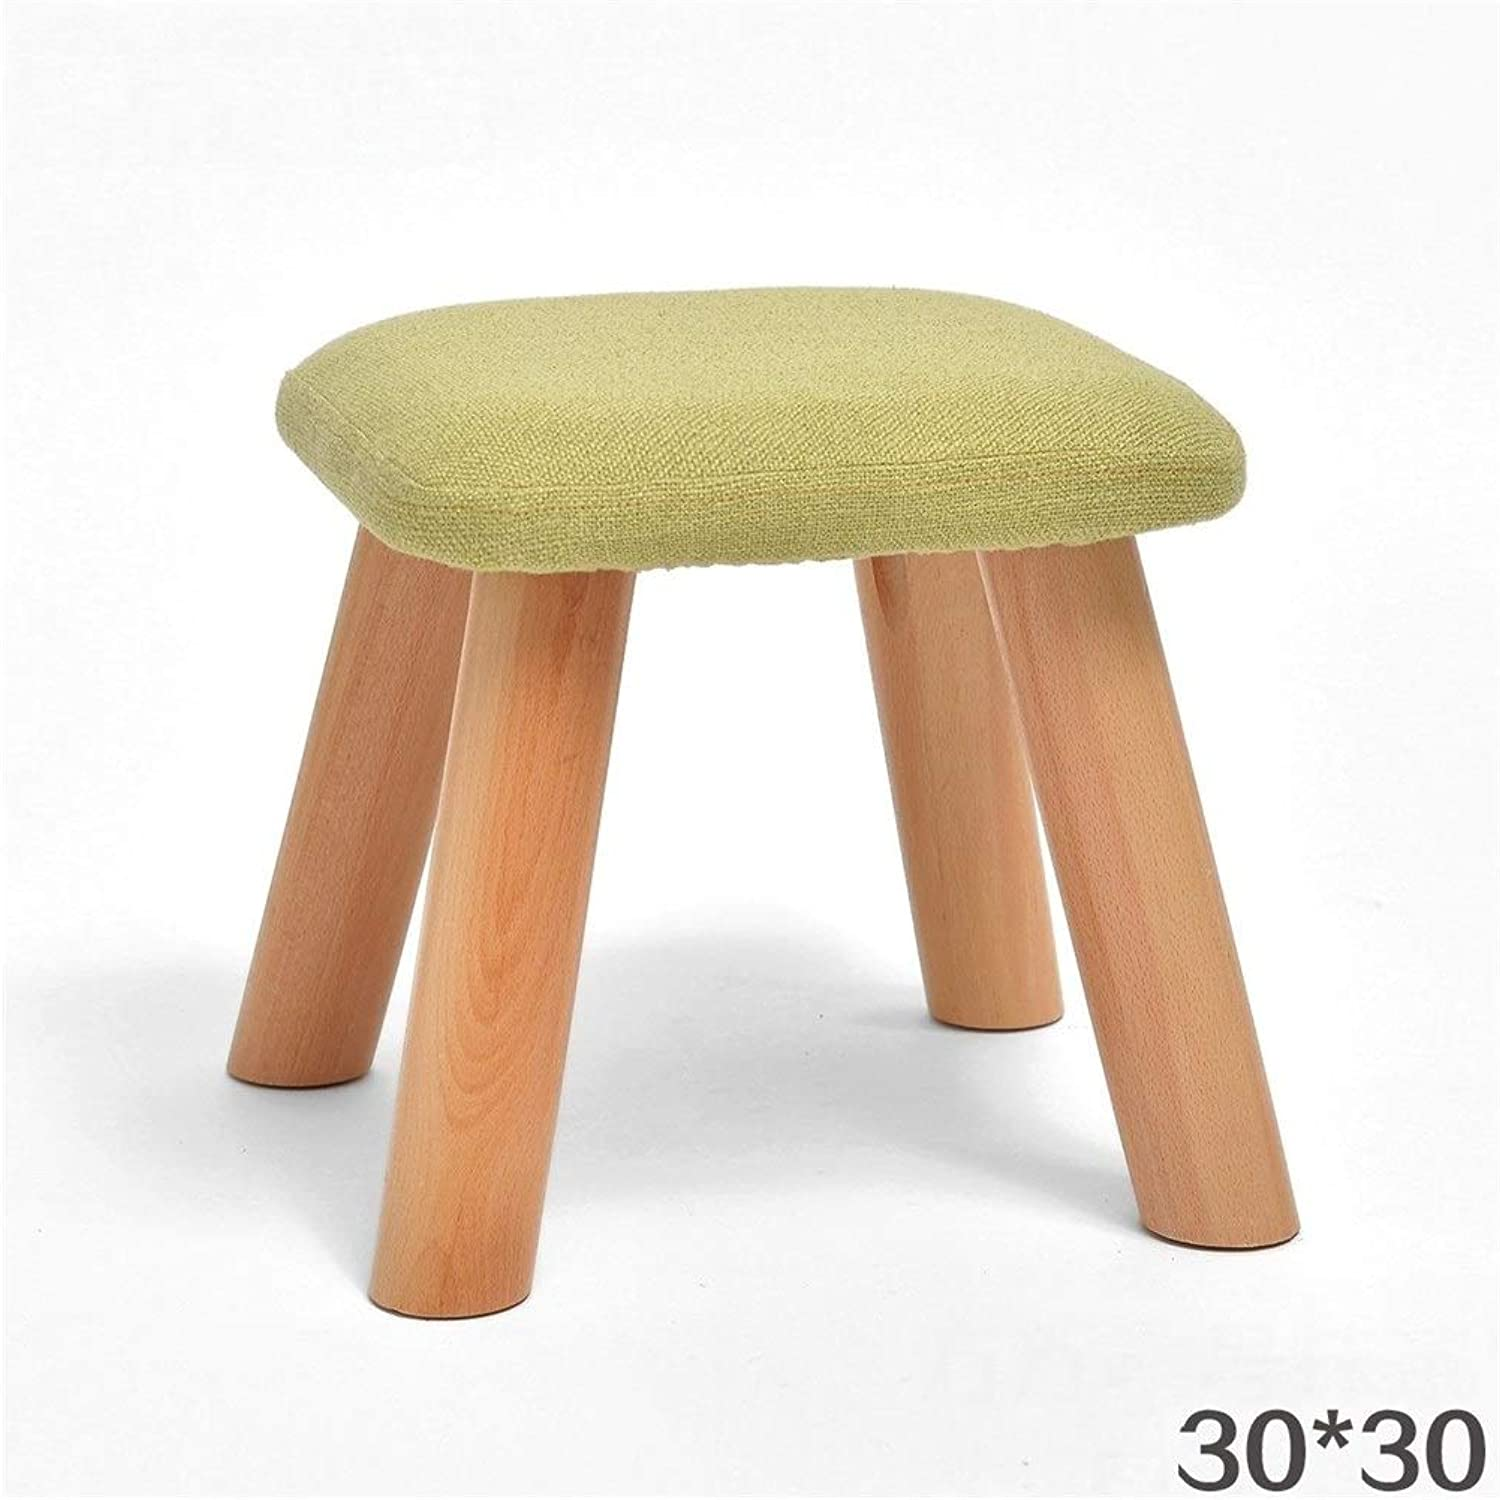 Solid Wood Cotton Linen Square Modern Stylish Simple Creative Sofa Living Room Bedroom Stool shoes Replacement Stool FENPING (color   B)